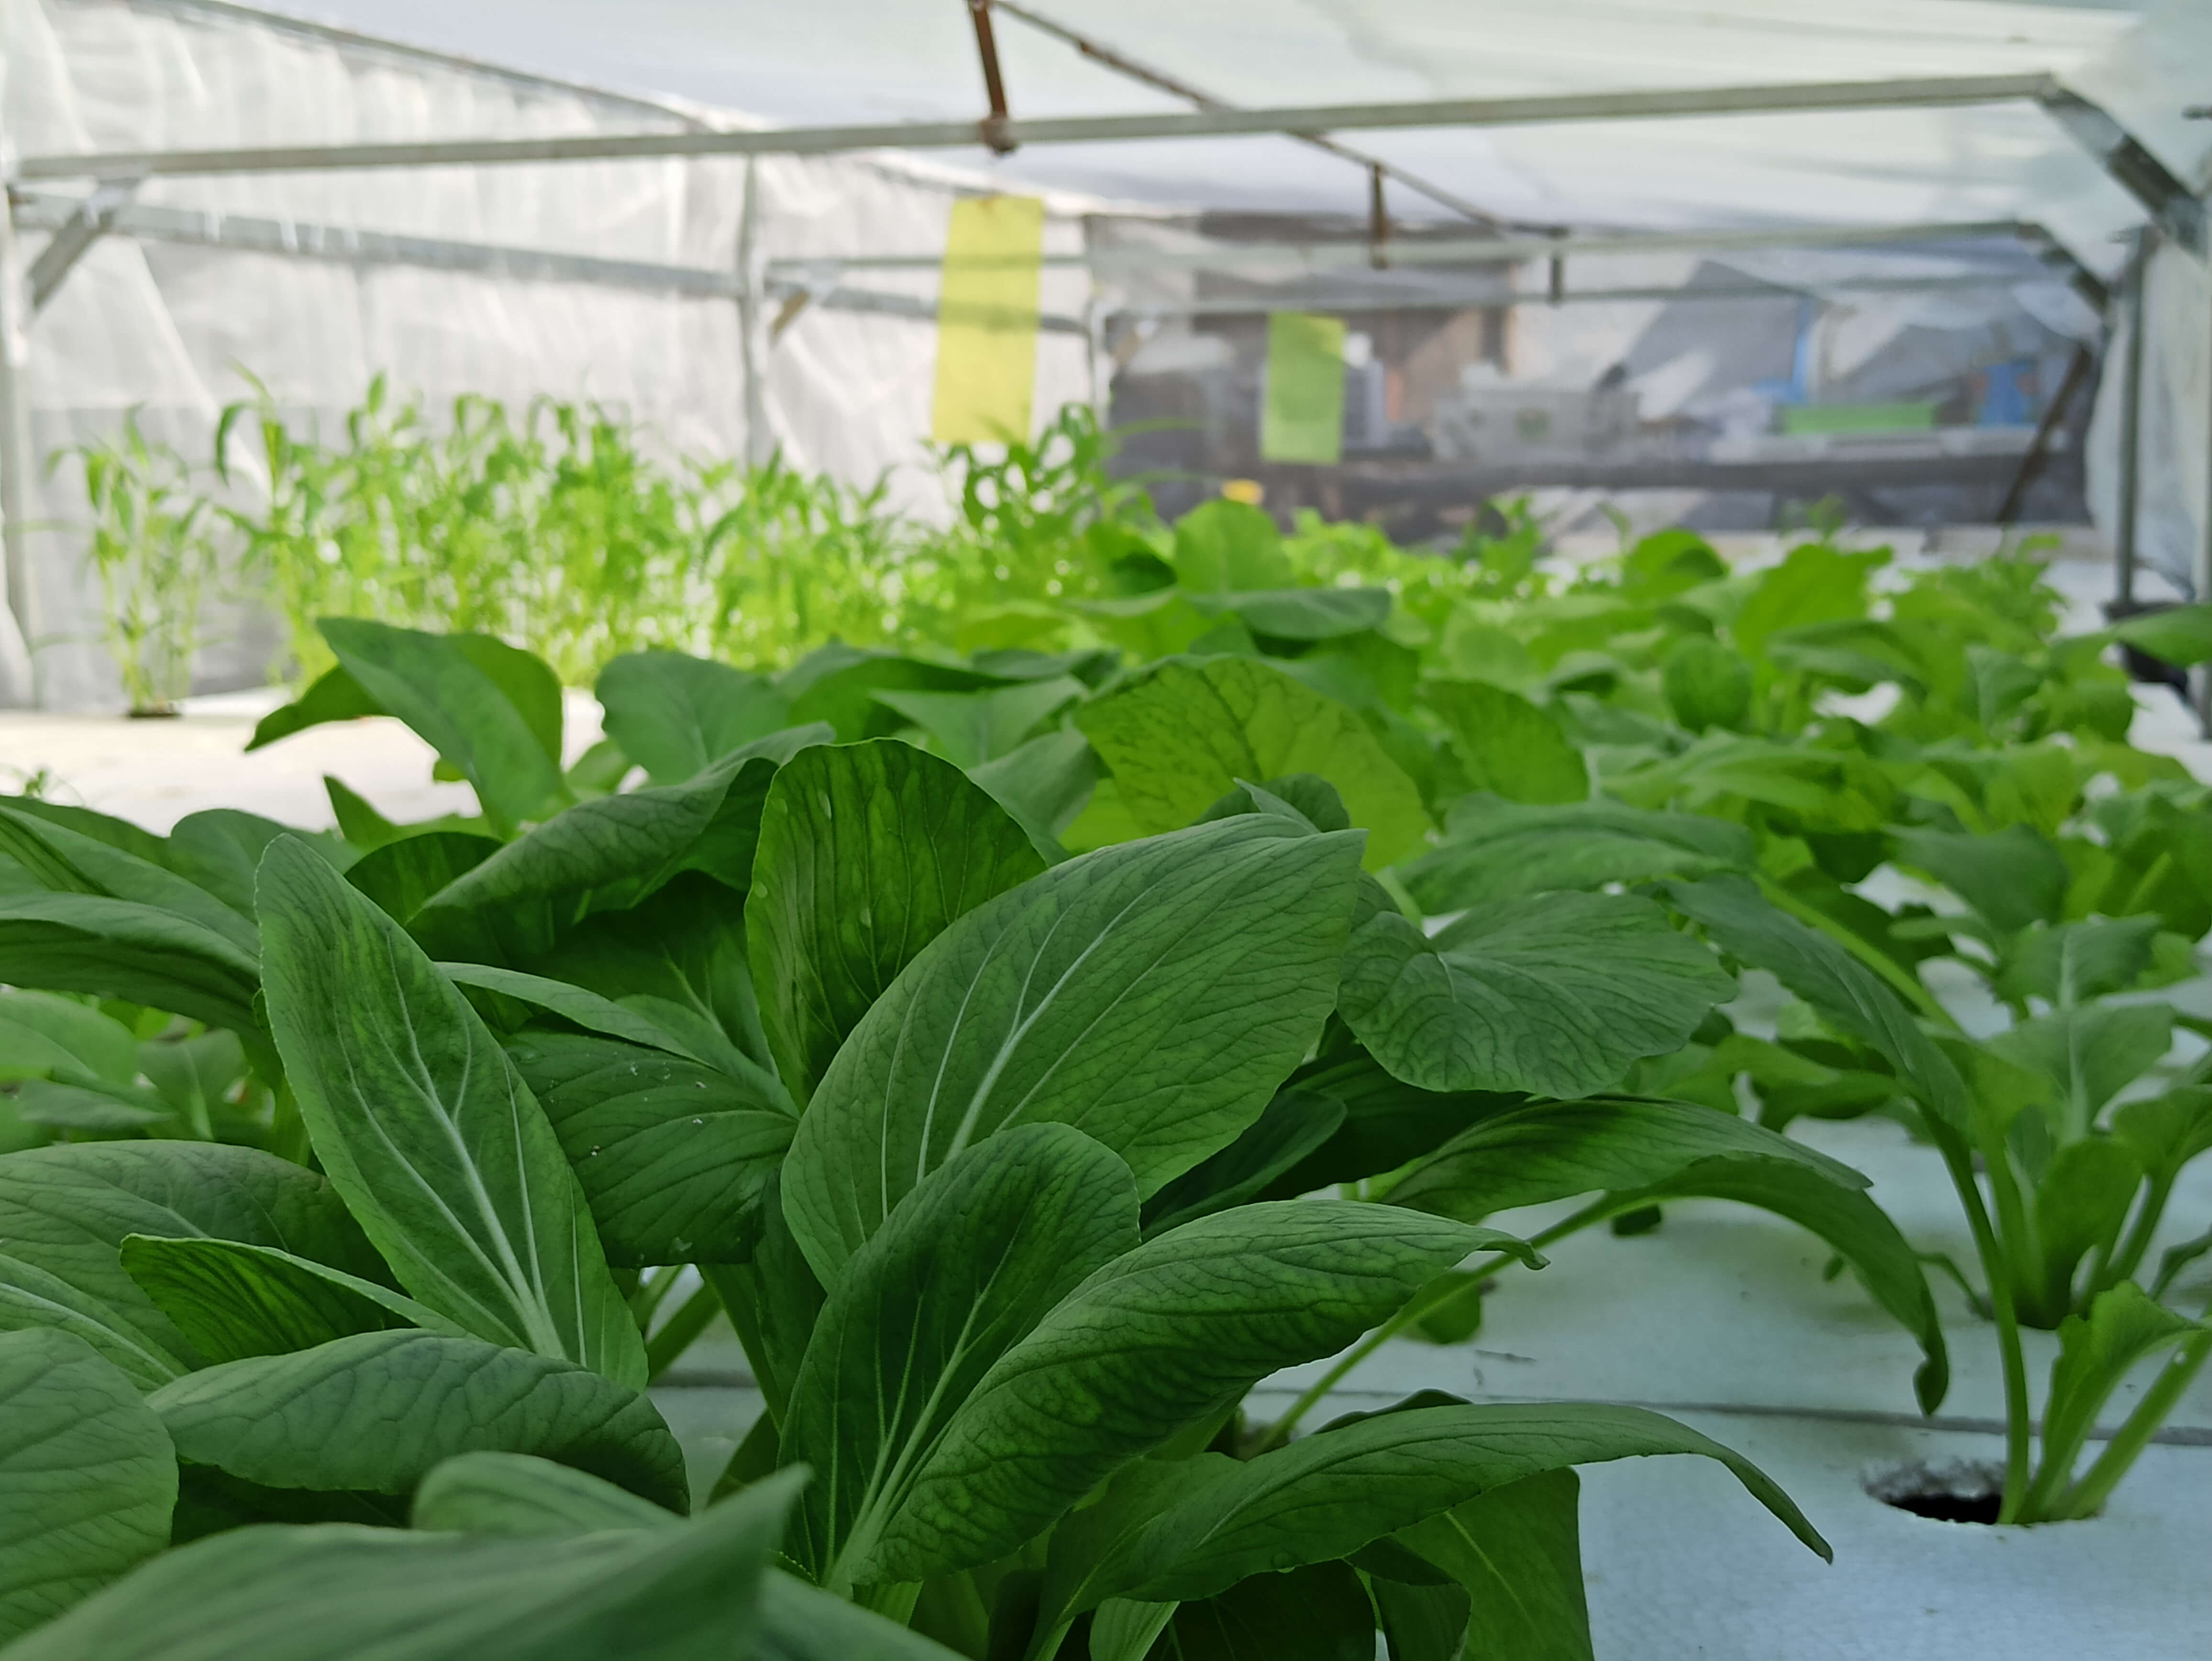 hydroponic vegetables grown in a small greenhouse